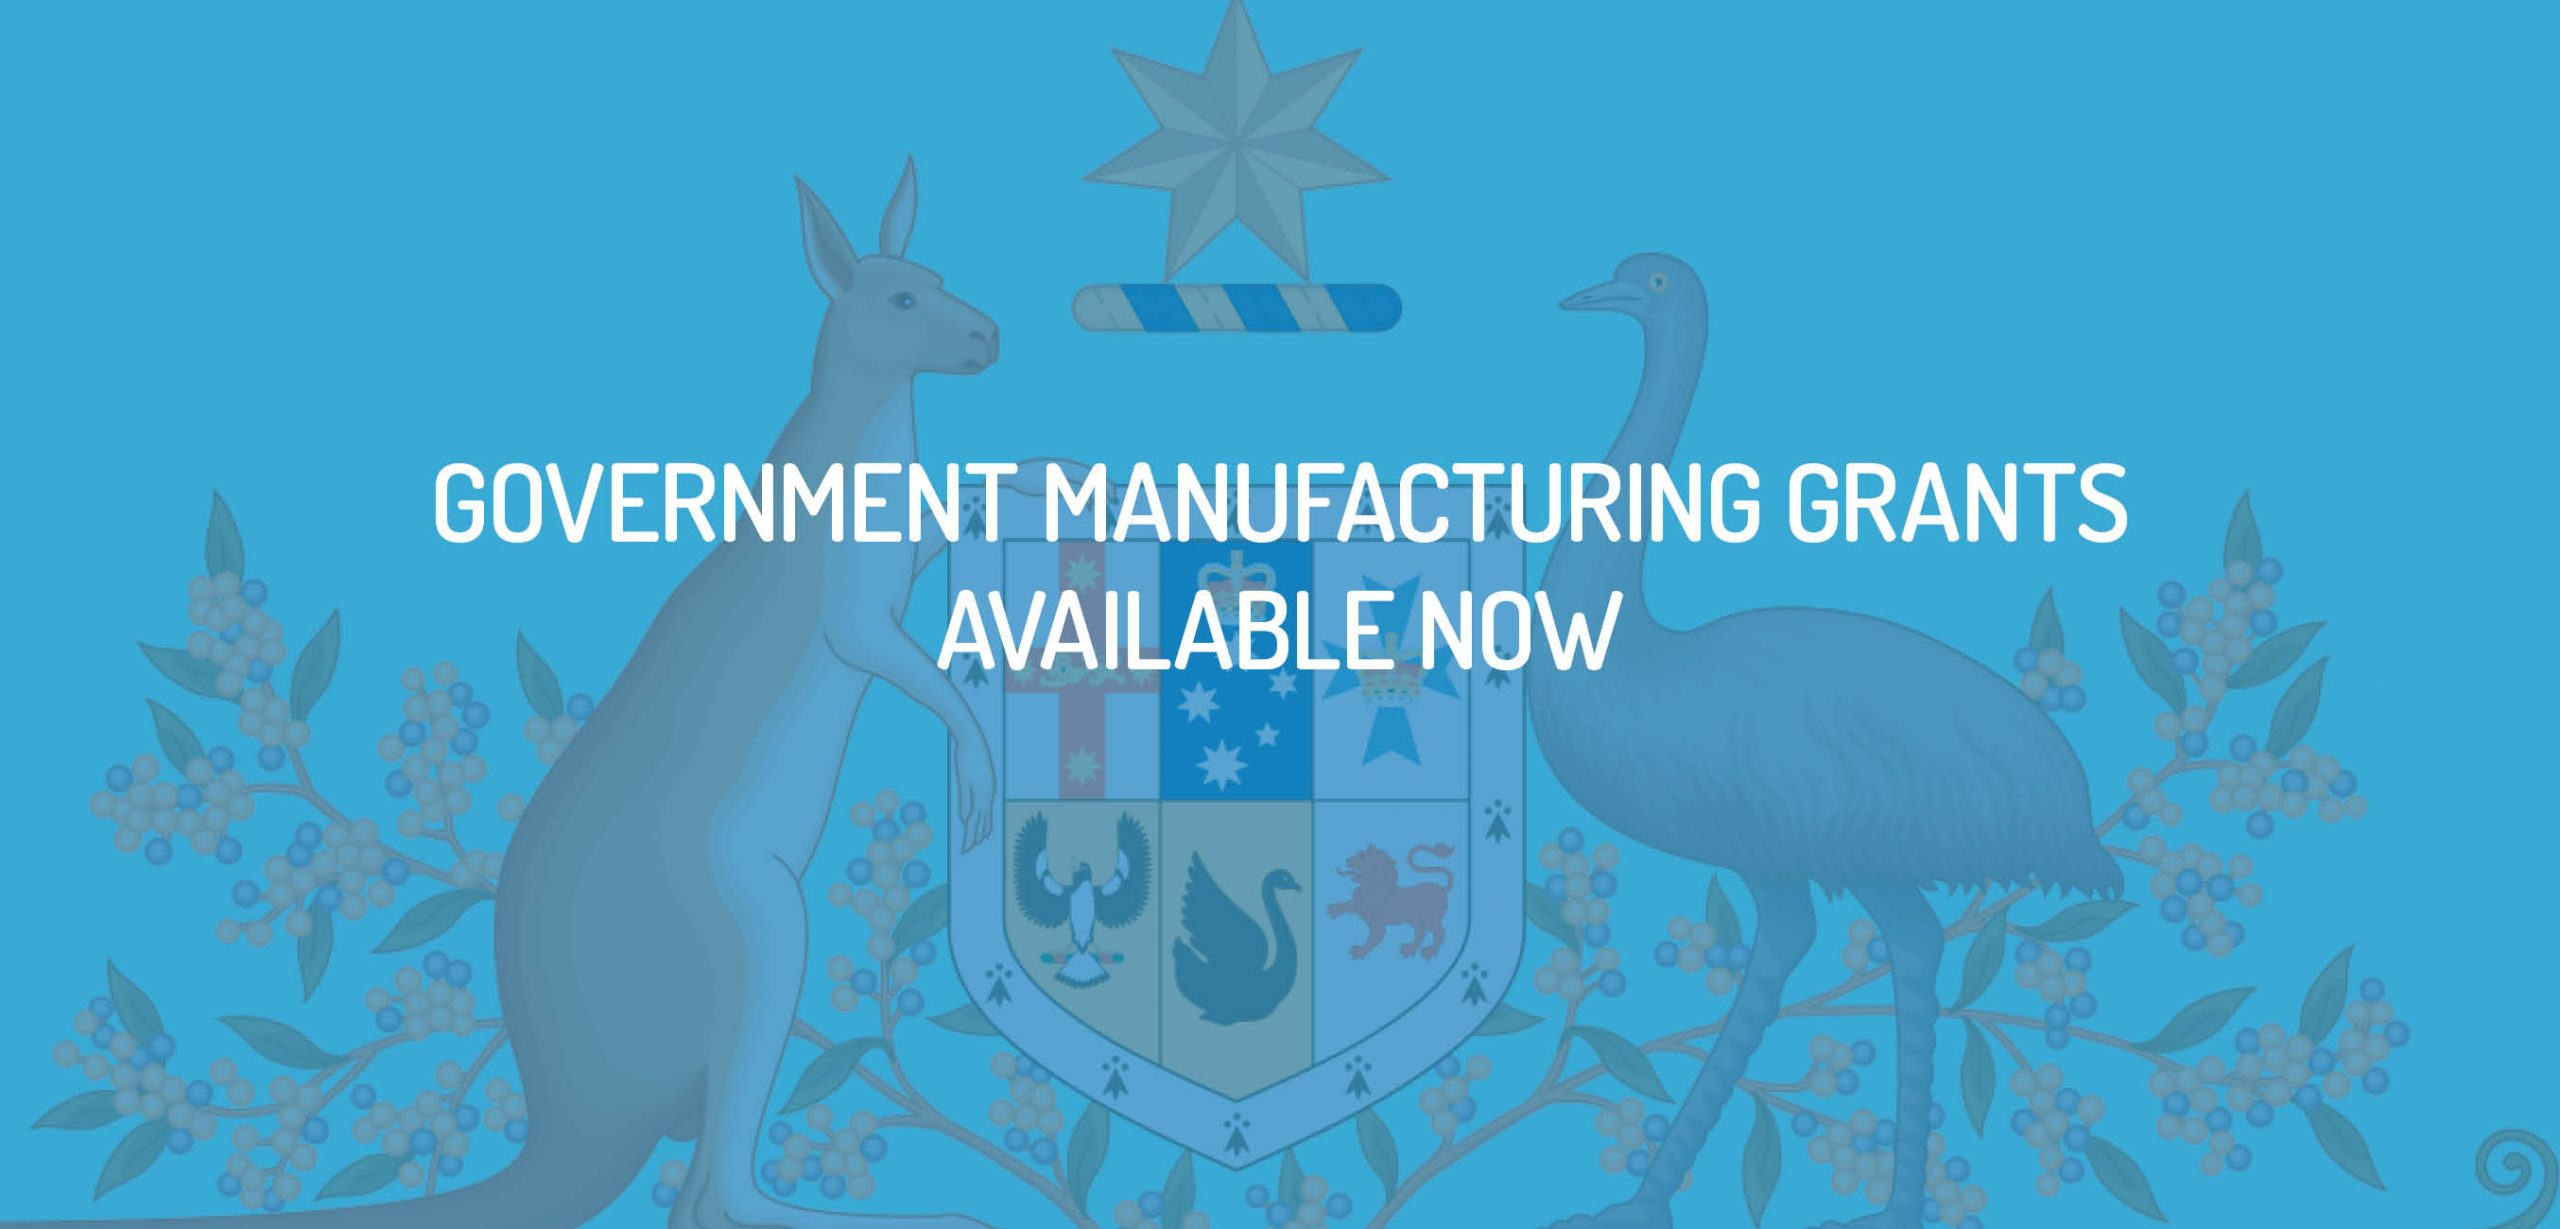 Government manufacturing grants